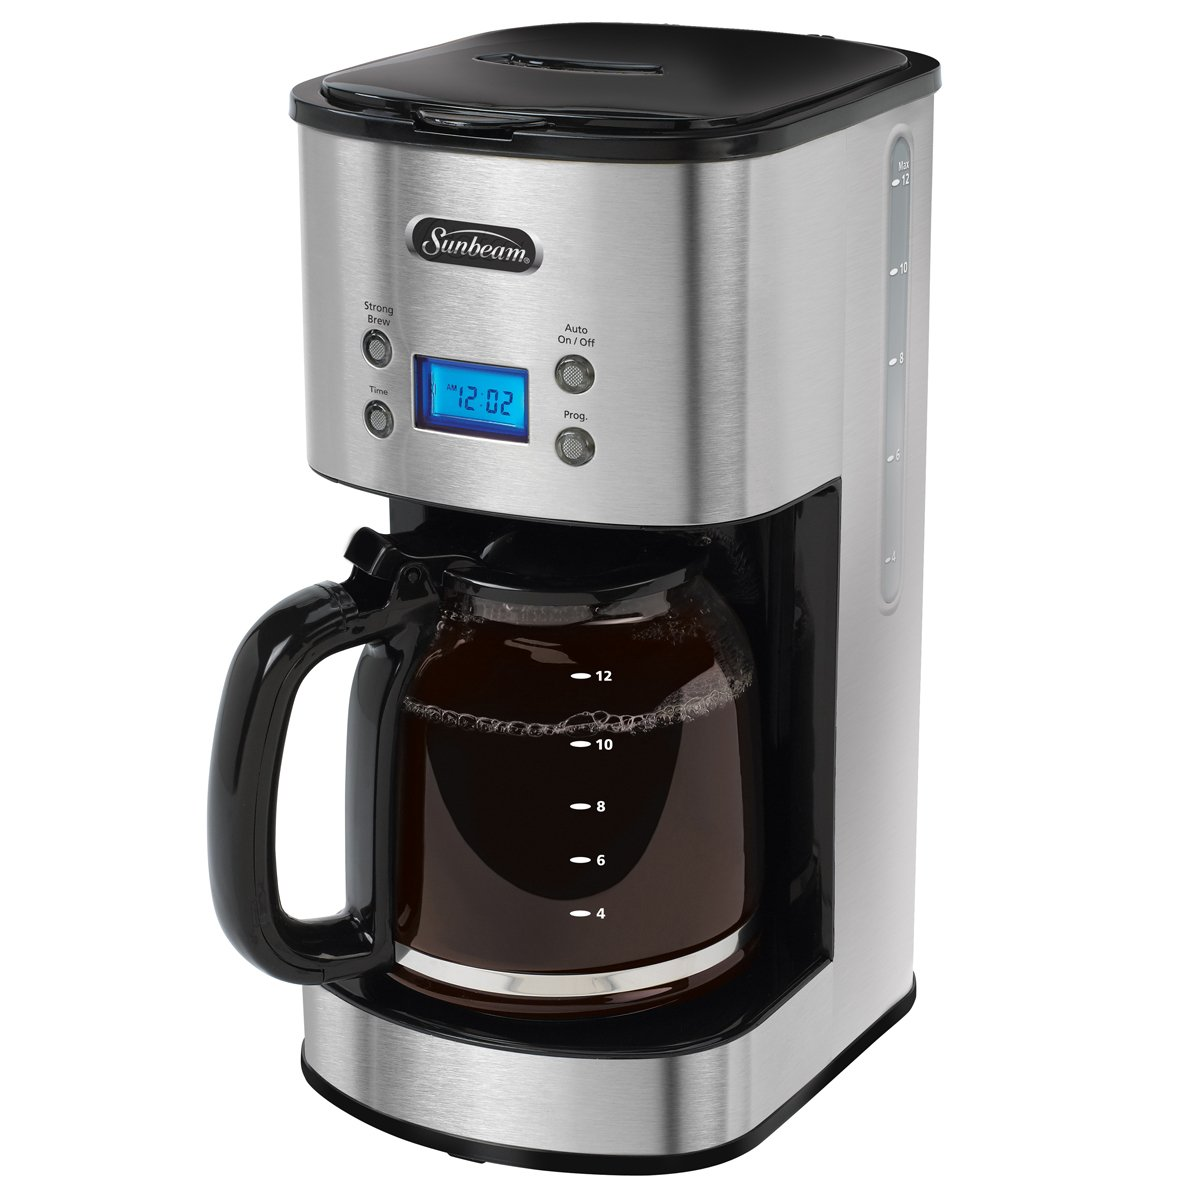 sunbeam 12 cup programmable coffeemaker stainless steel bvsbcm0001 033 sunbeam canada. Black Bedroom Furniture Sets. Home Design Ideas